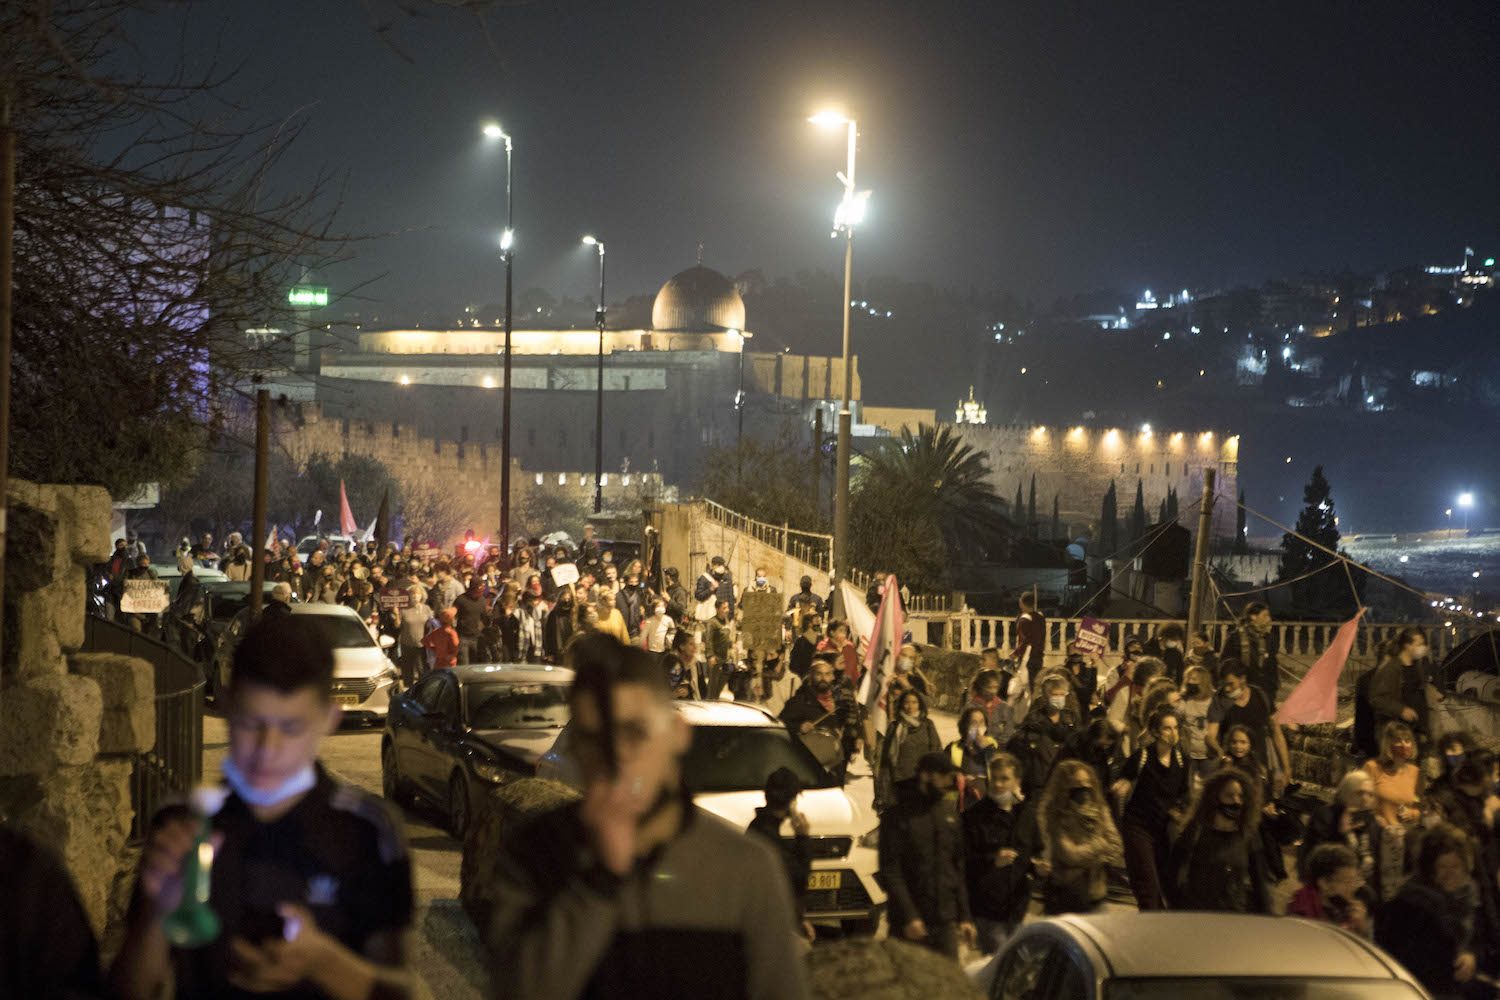 Hundreds of Palestinians and Israelis march from Silwan in East Jerusalem to the Prime Minister's Residence, February 6, 2021. (Keren Manor/Activestills.org)